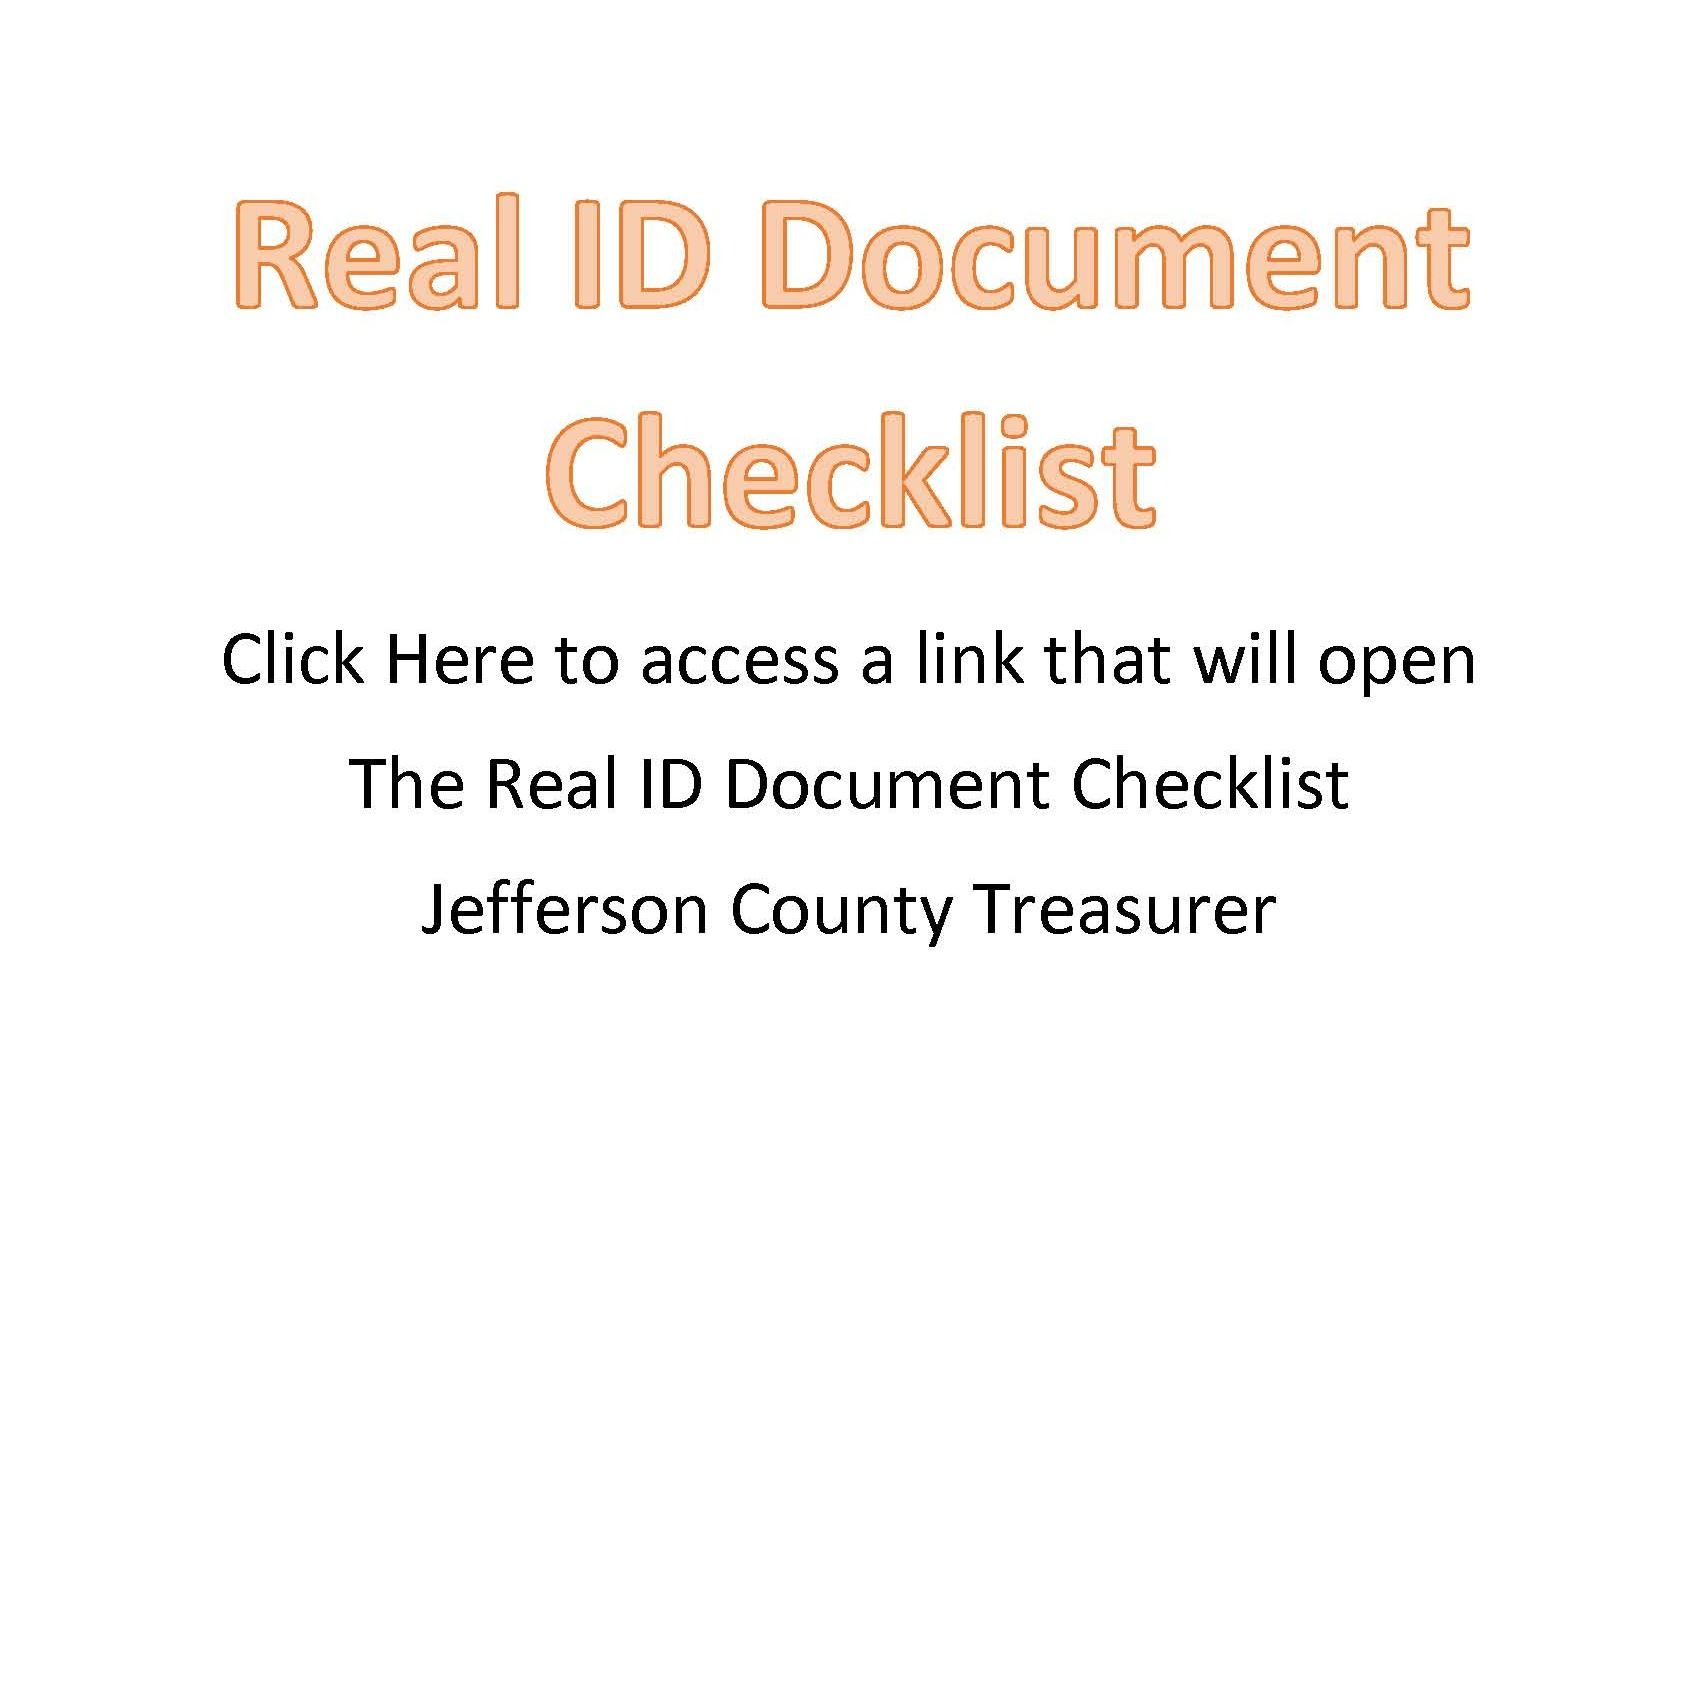 Real ID Document Checklist